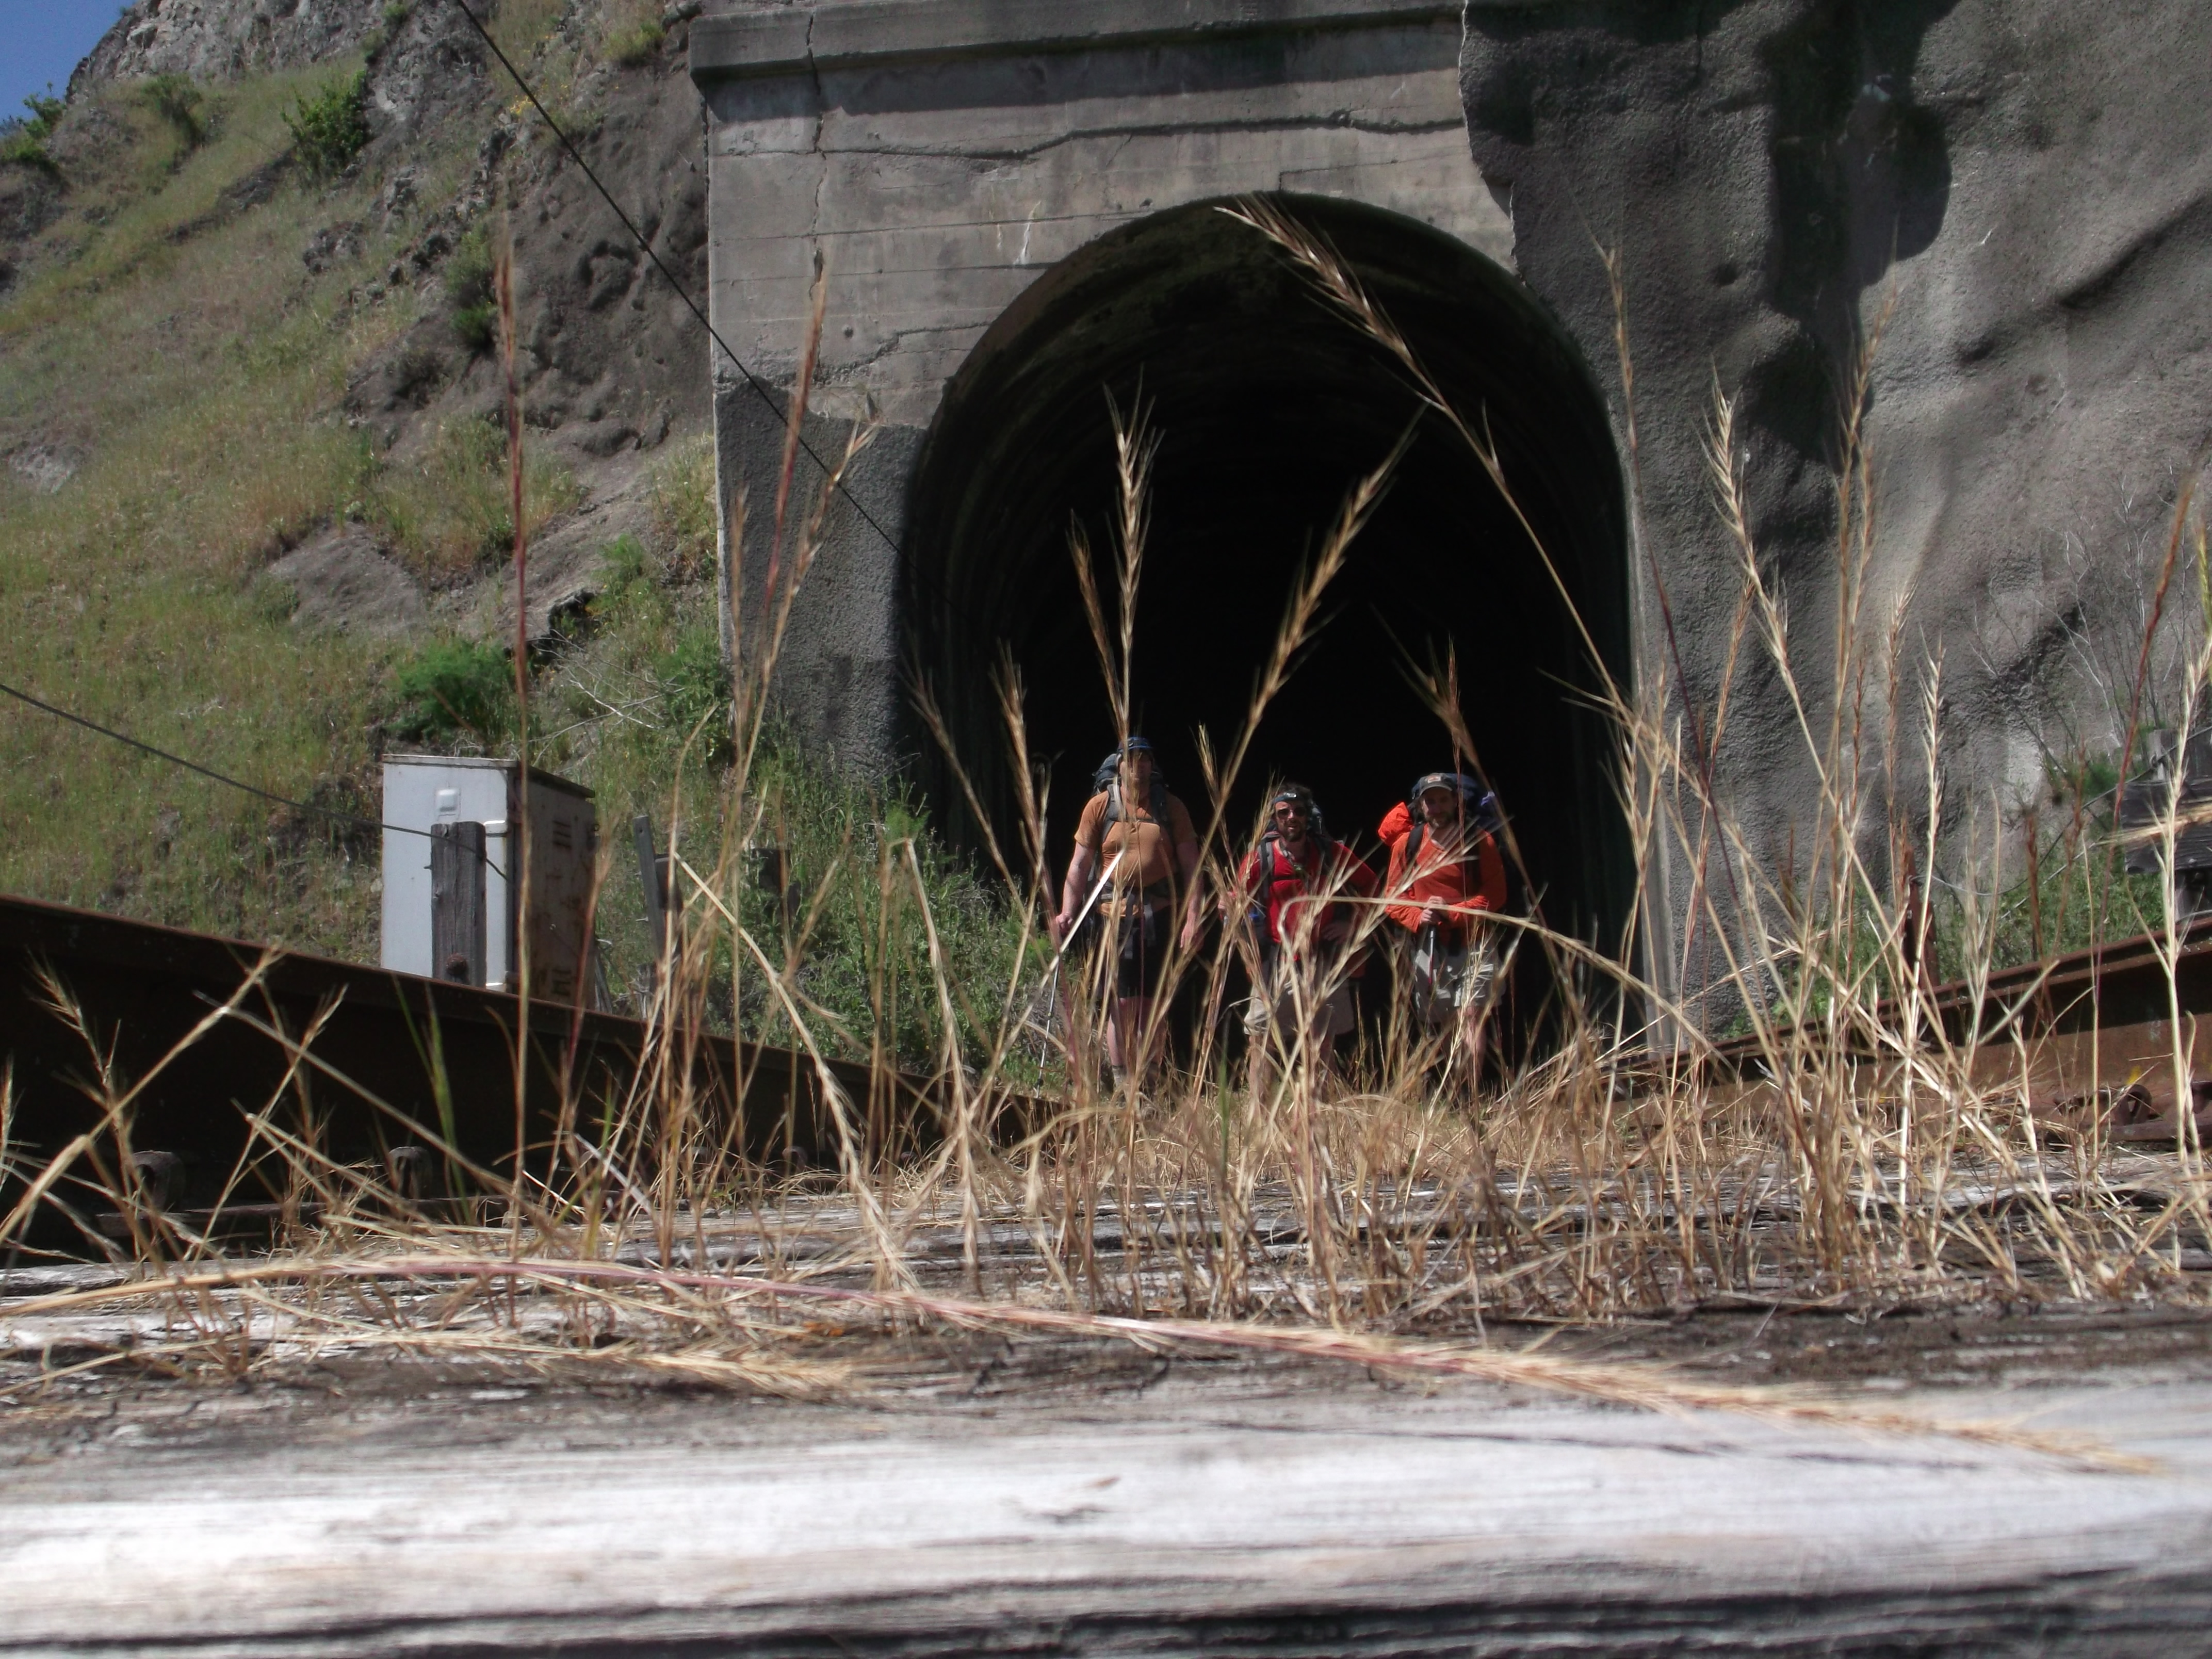 Issuing forth from the darkness of their subterranean shortcut, the three travelers are horrified to discover that the passage has somehow shrunken them to the size of children's toy action figures. (photo by Dr. Shrinker)